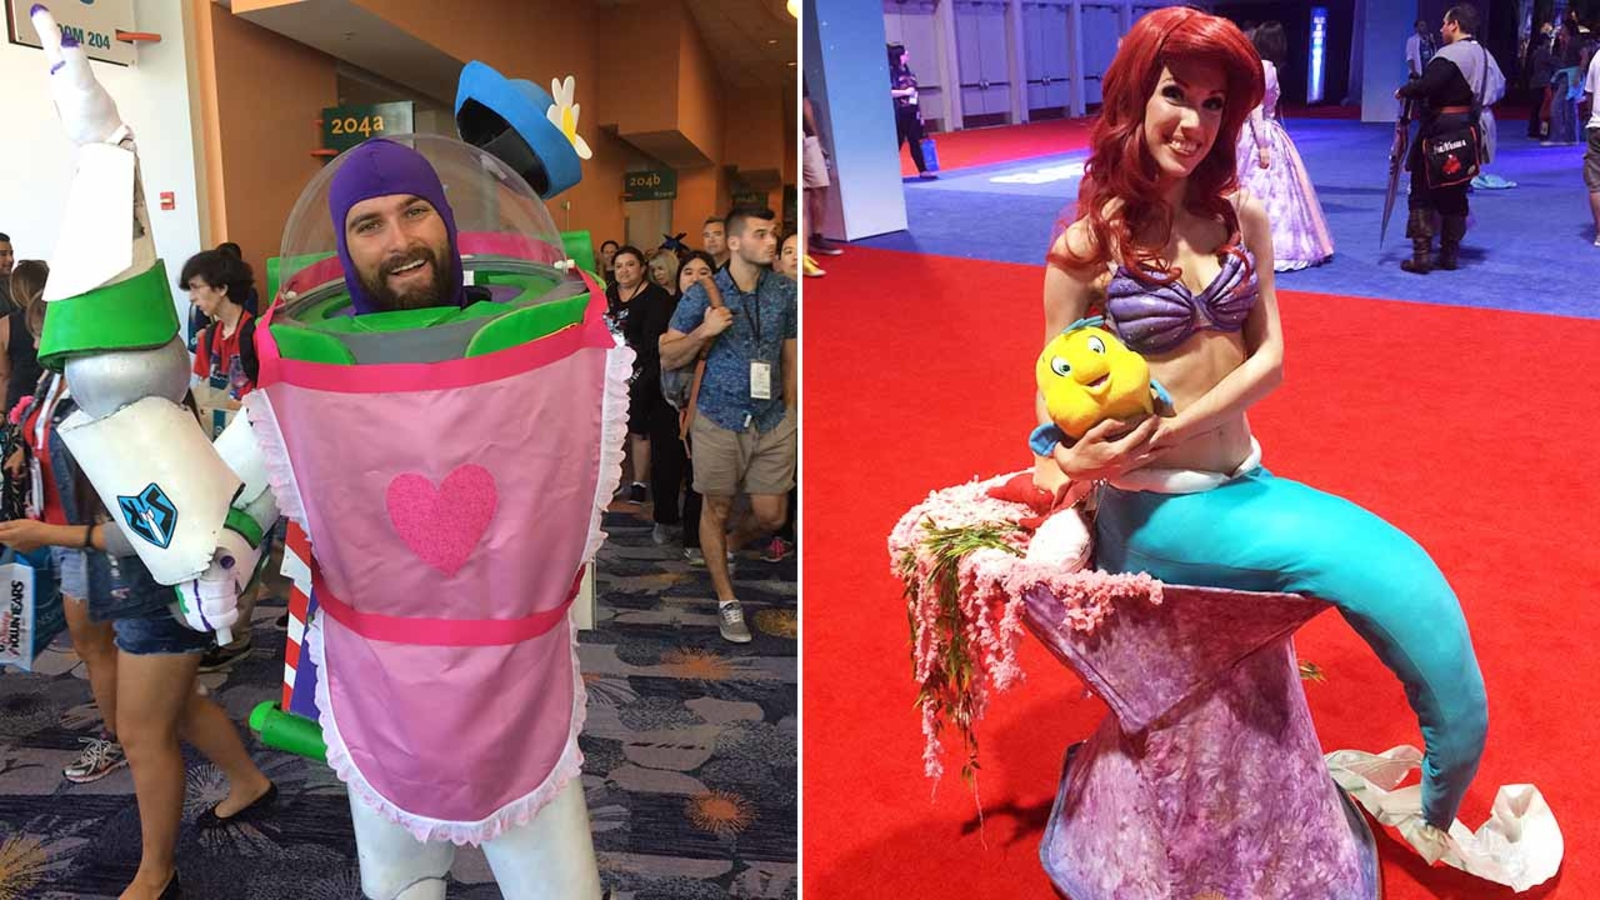 Disney cosplay fans do their best character impressions ...